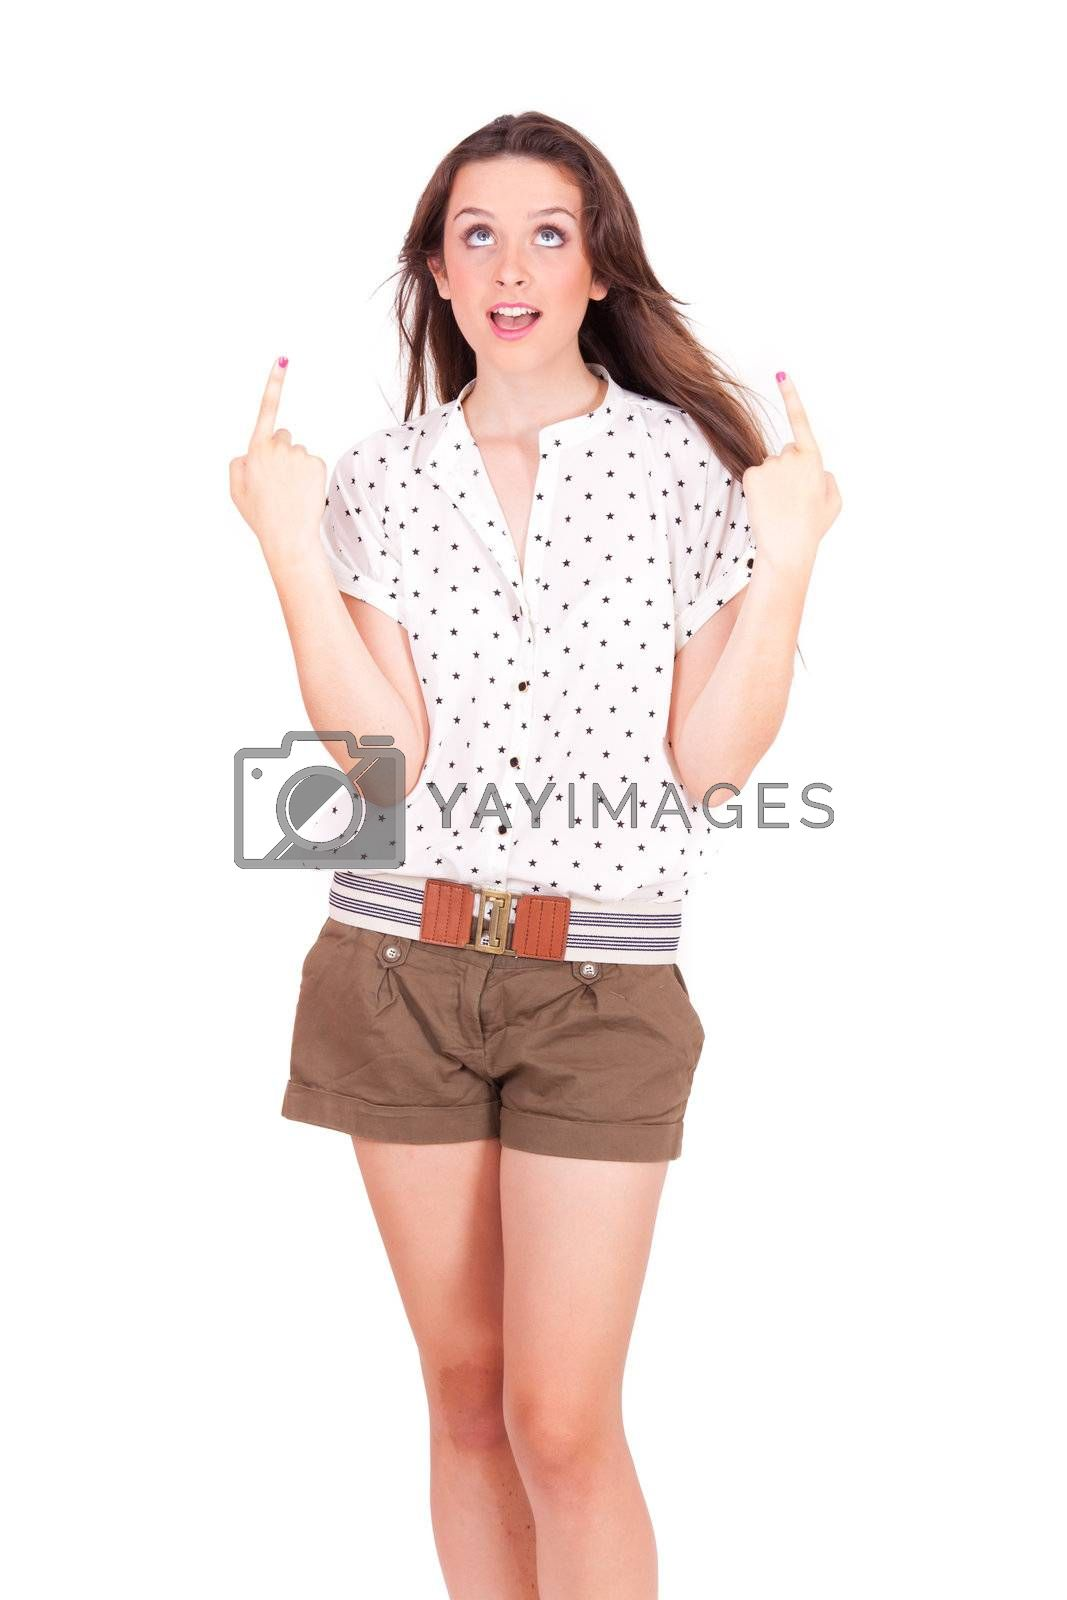 young women pointing up on white background